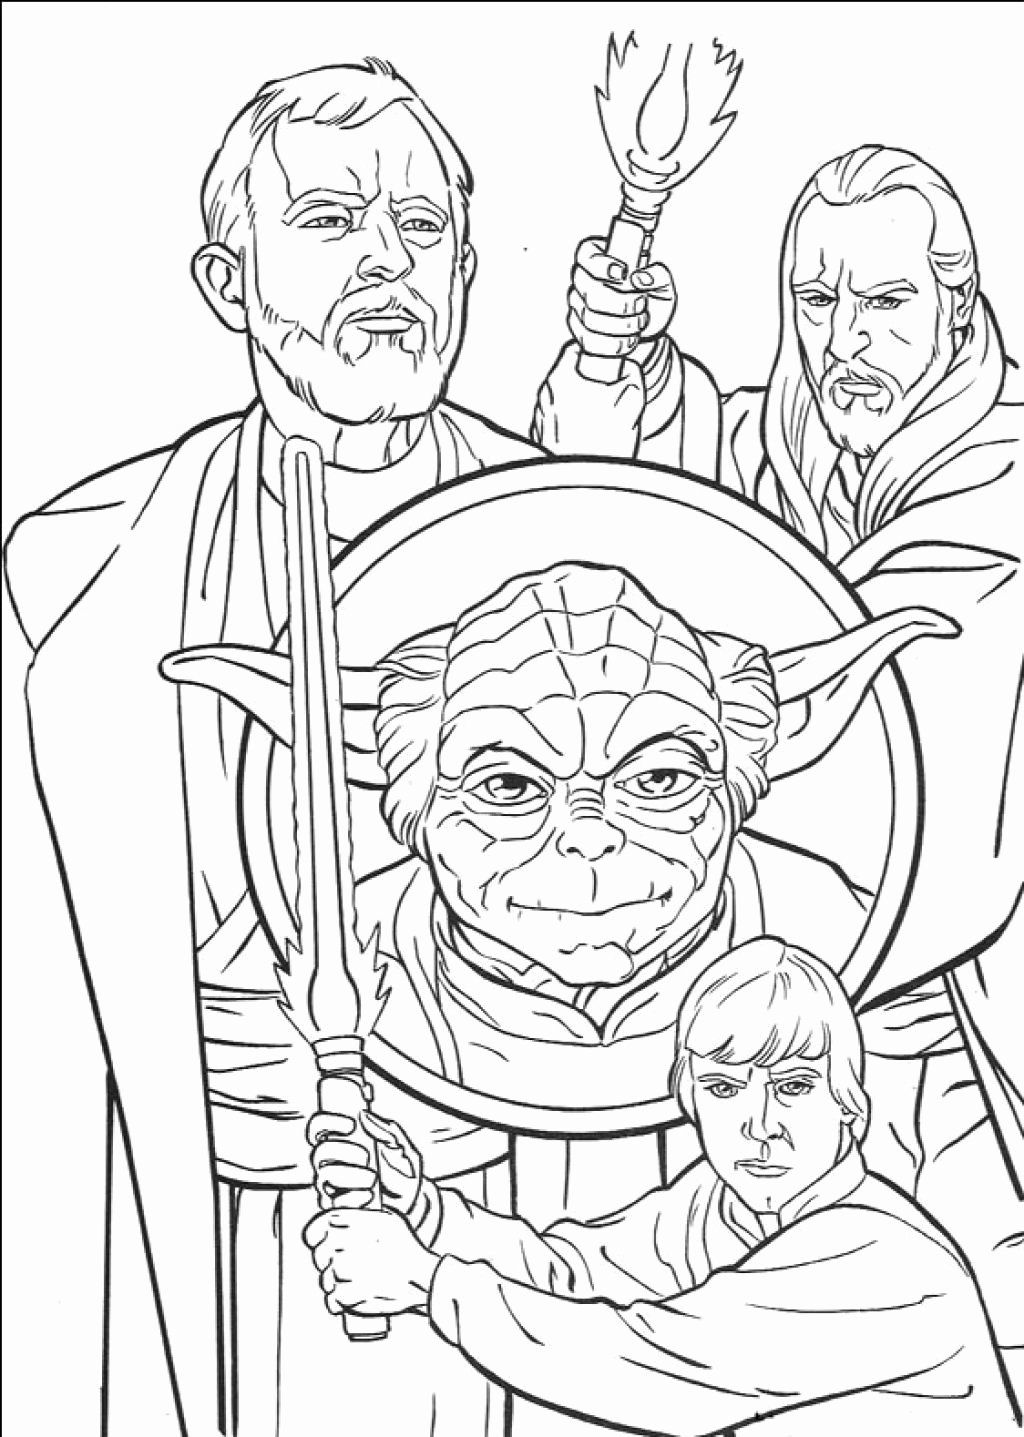 Star Wars Coloring Book For Adults Fresh Star Wars Coloring Pages Free Printable Star Wars Colorin In 2020 Star Wars Coloring Book Star Wars Colors Star Coloring Pages [ 1437 x 1024 Pixel ]